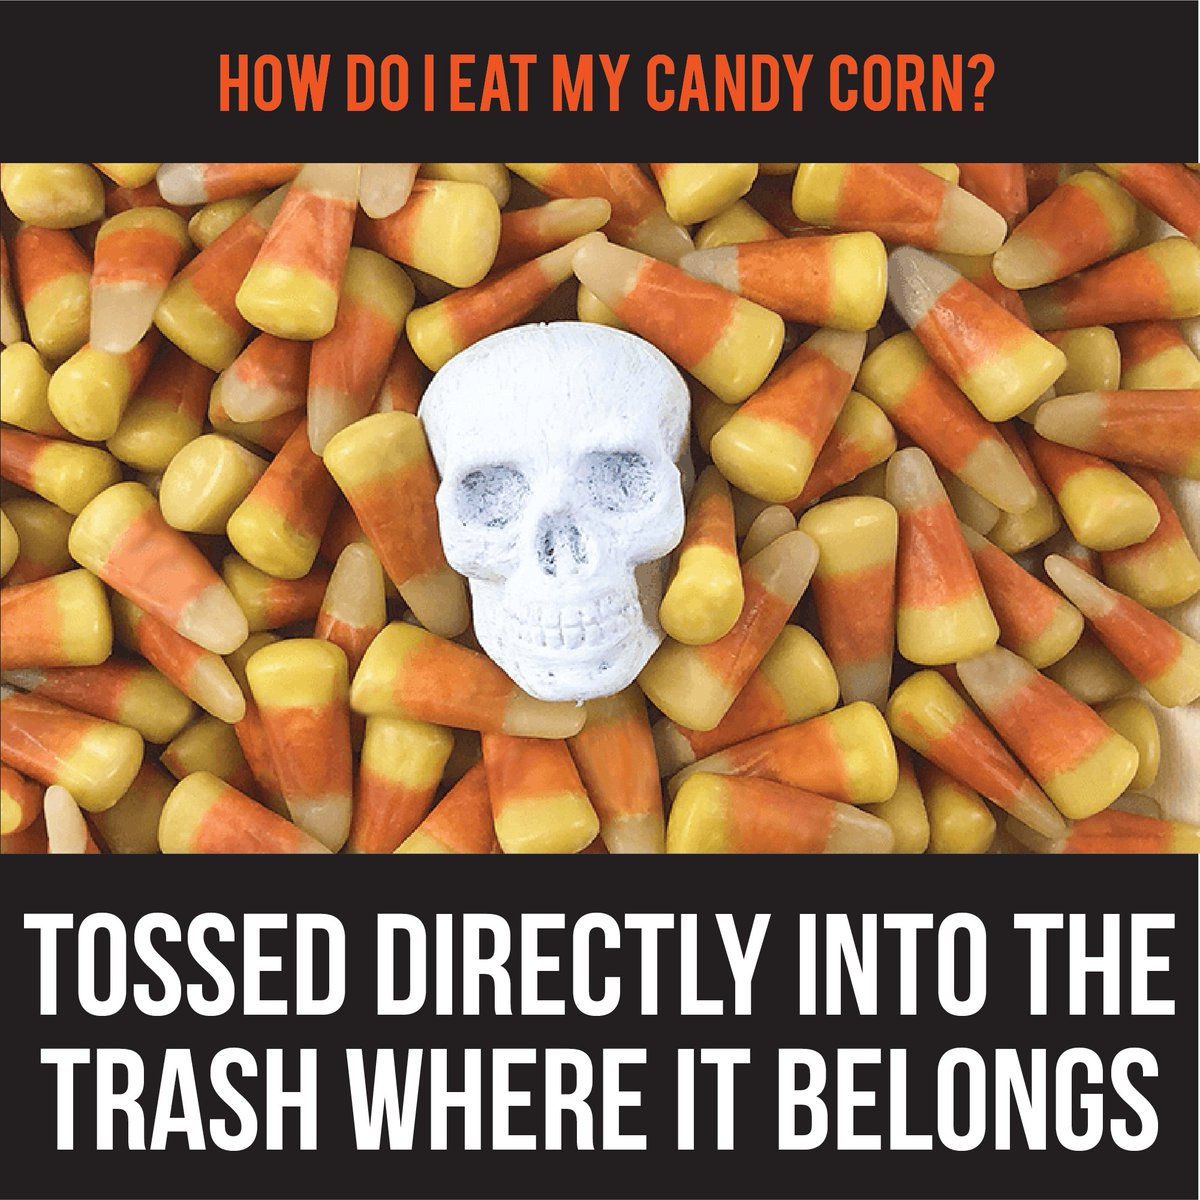 Yumearth On Twitter How Do You Eat Your Candy Corn Pick A Side Procandycorn Anticandycorn Thesweetestdebate